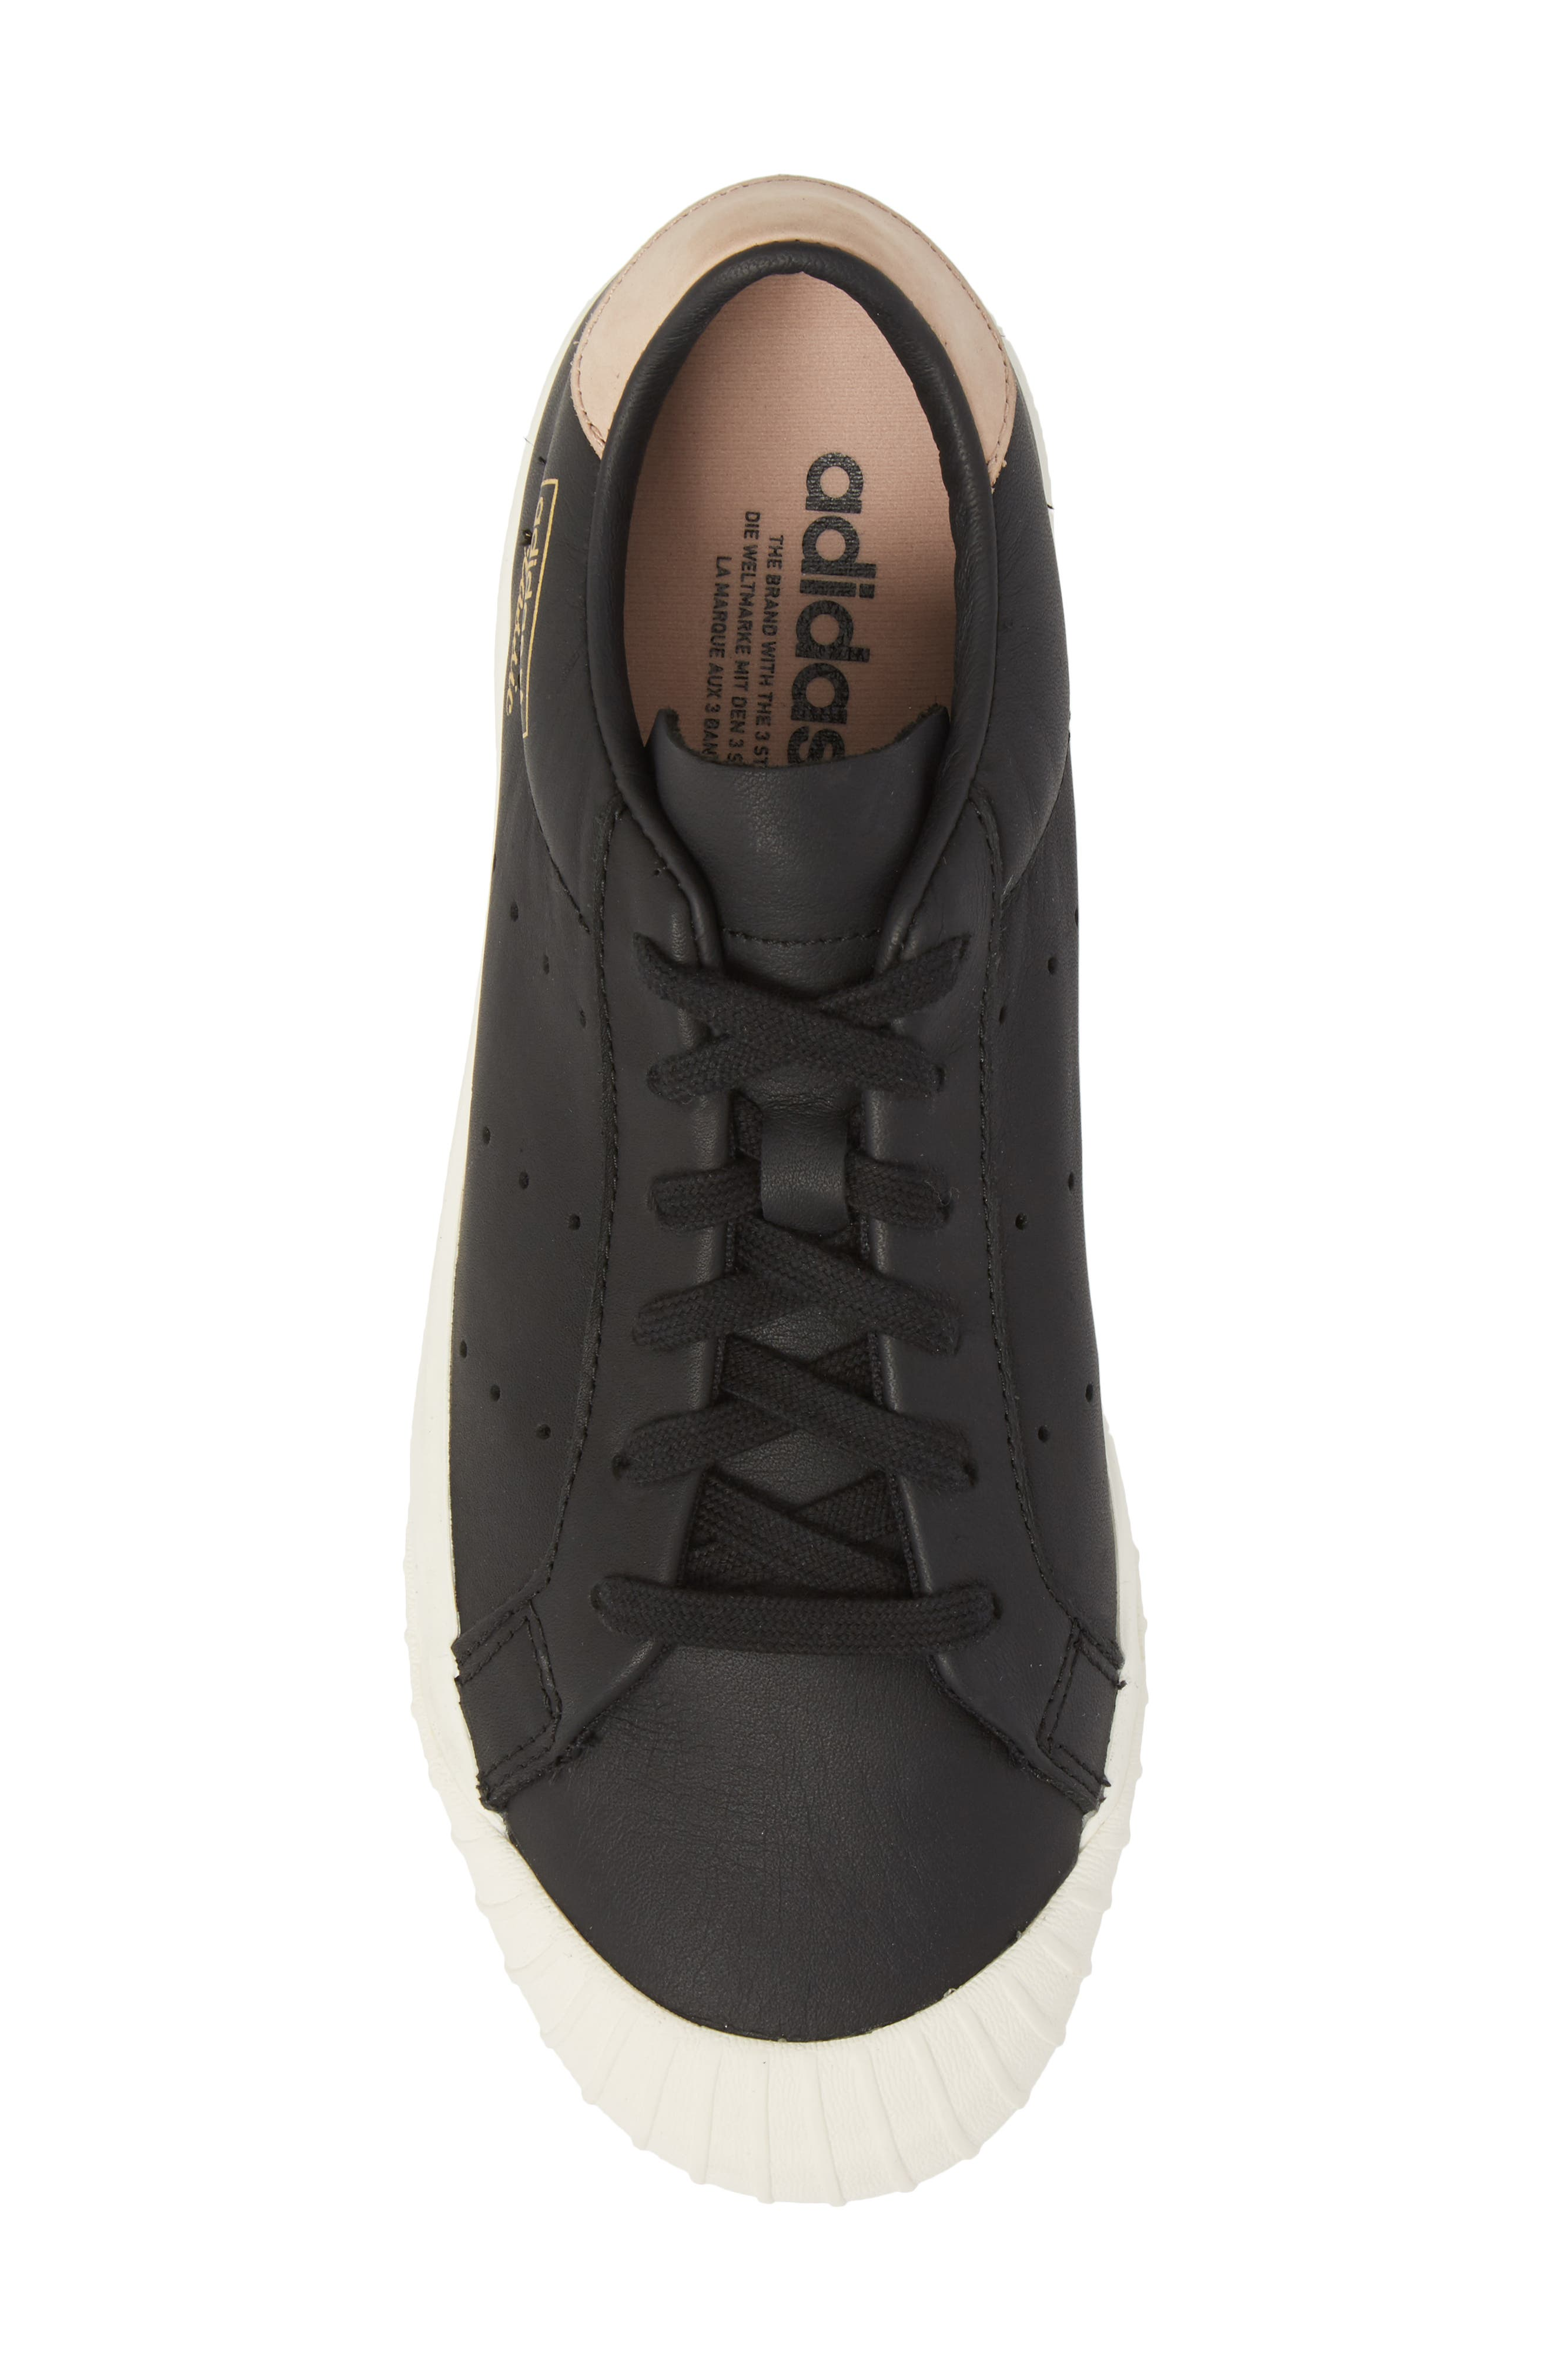 Everyn Perforated Low Top Sneaker,                             Alternate thumbnail 5, color,                             001